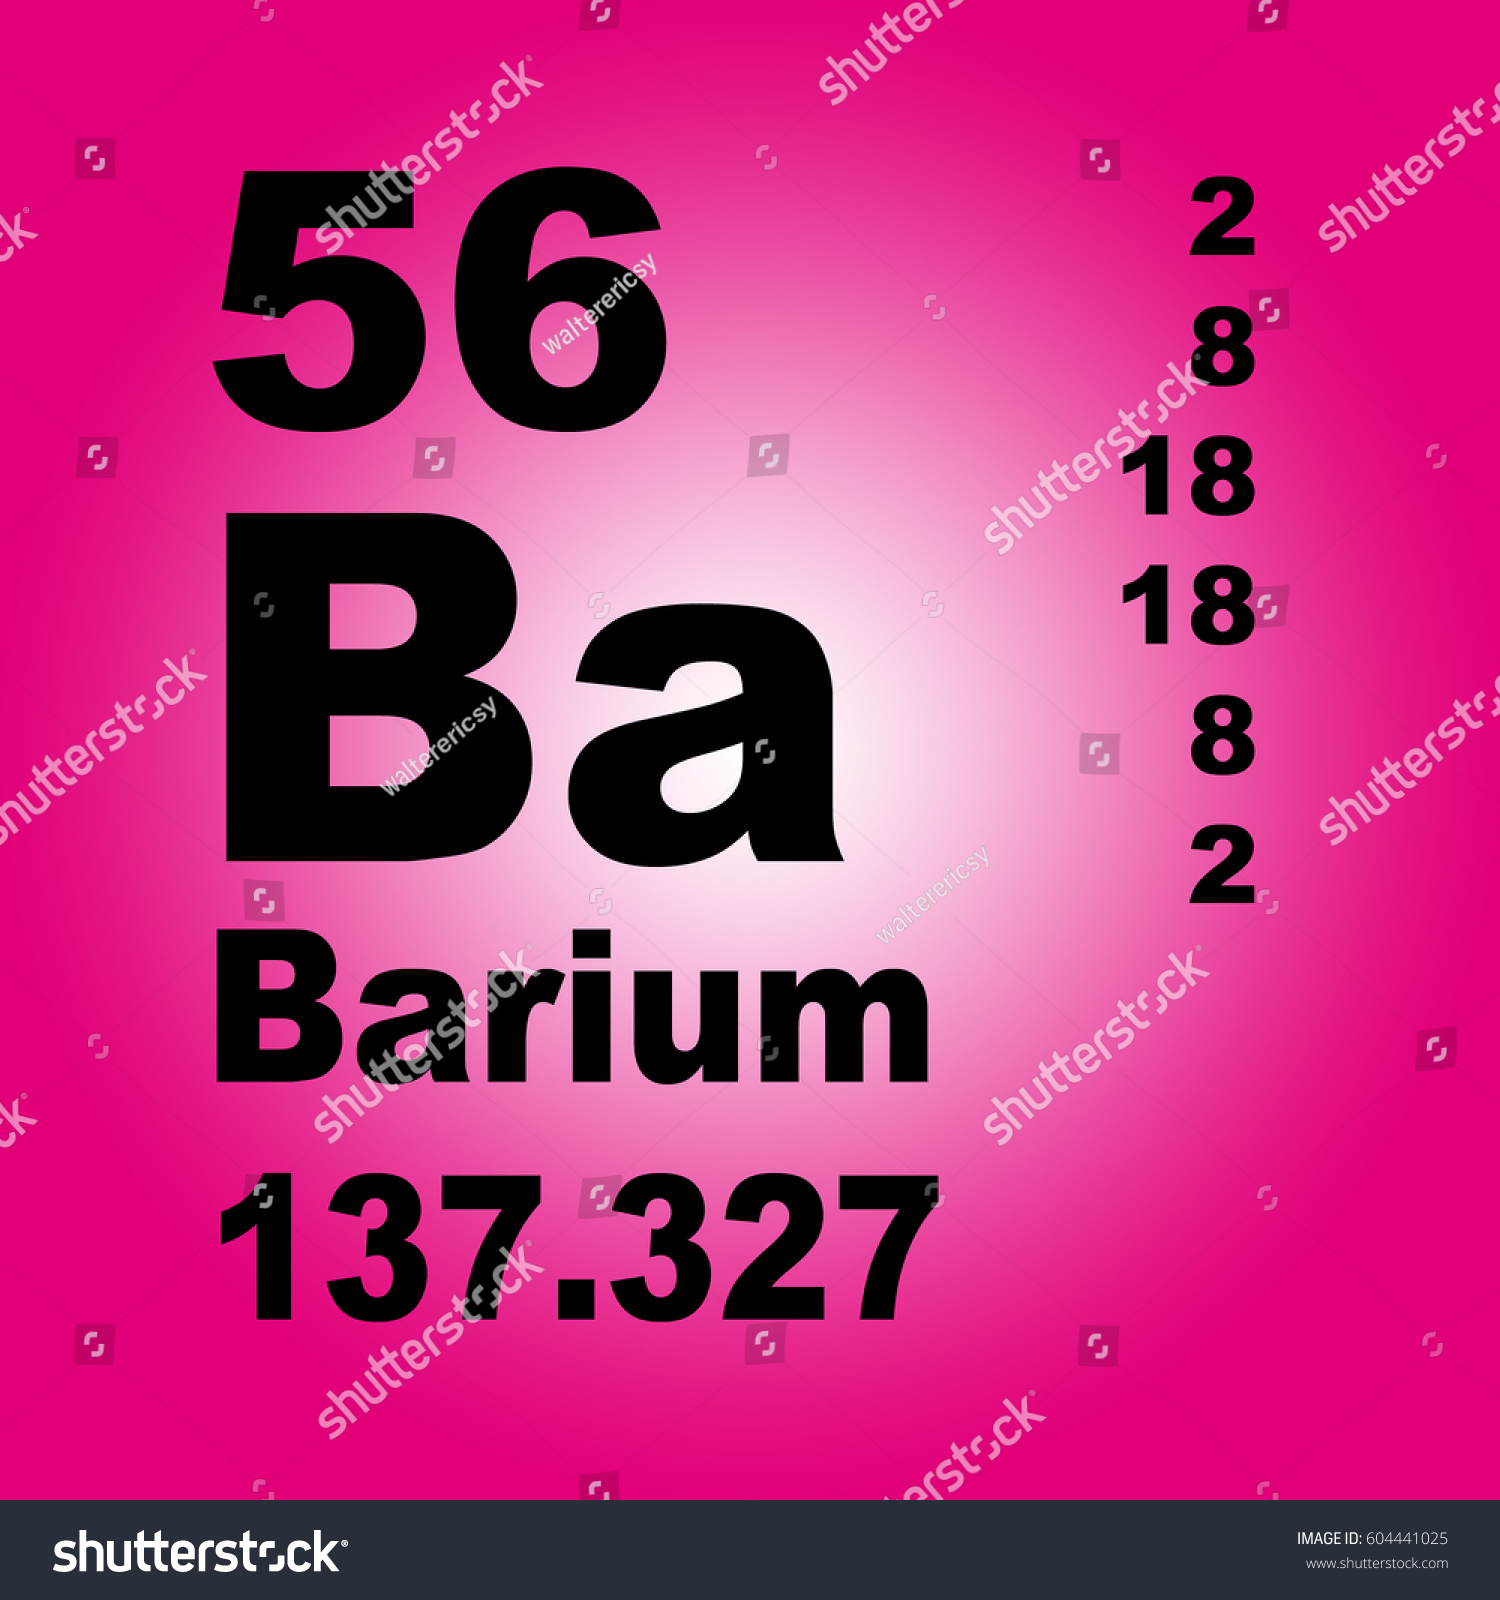 Barium on periodic table images periodic table images barium on periodic table aviongoldcorp barium on periodic table aviongoldcorp gamestrikefo images gamestrikefo Gallery